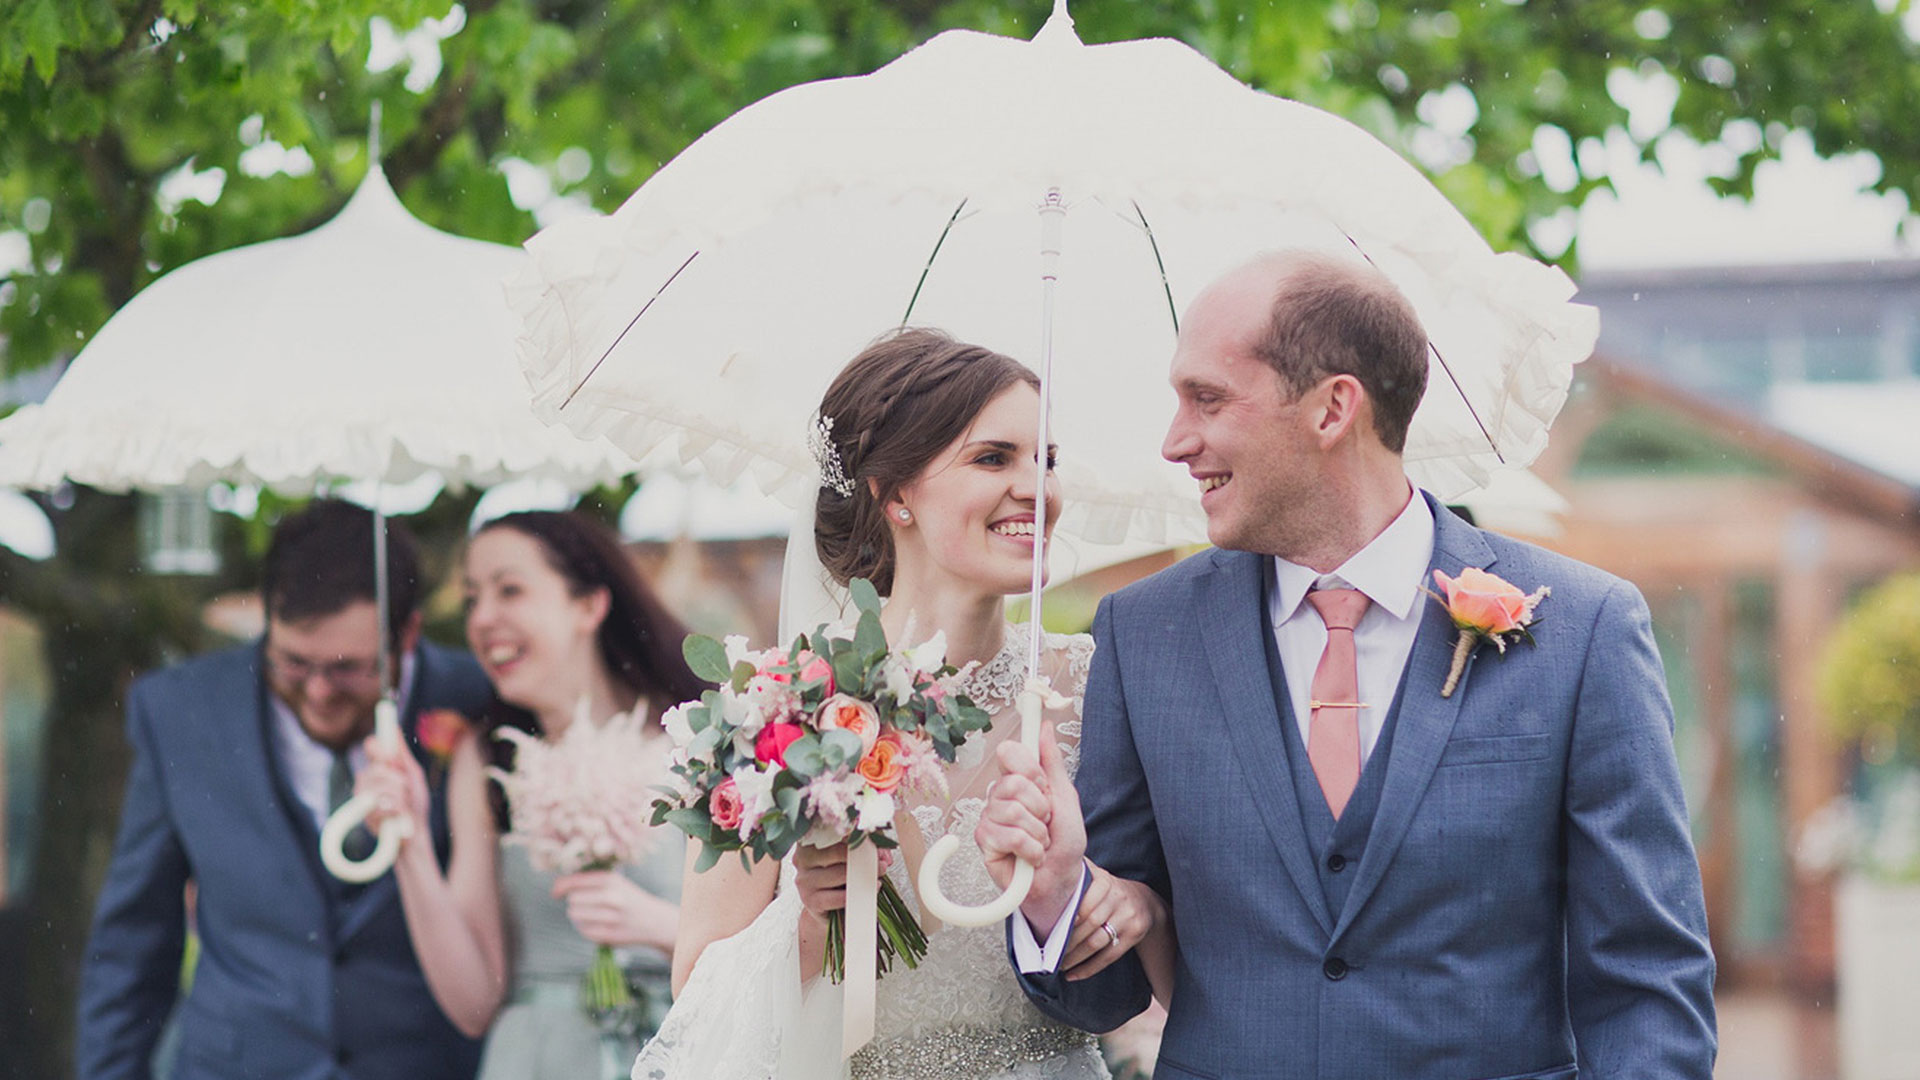 bride-and-groom-vintage-wedding-umbrellas.jpg